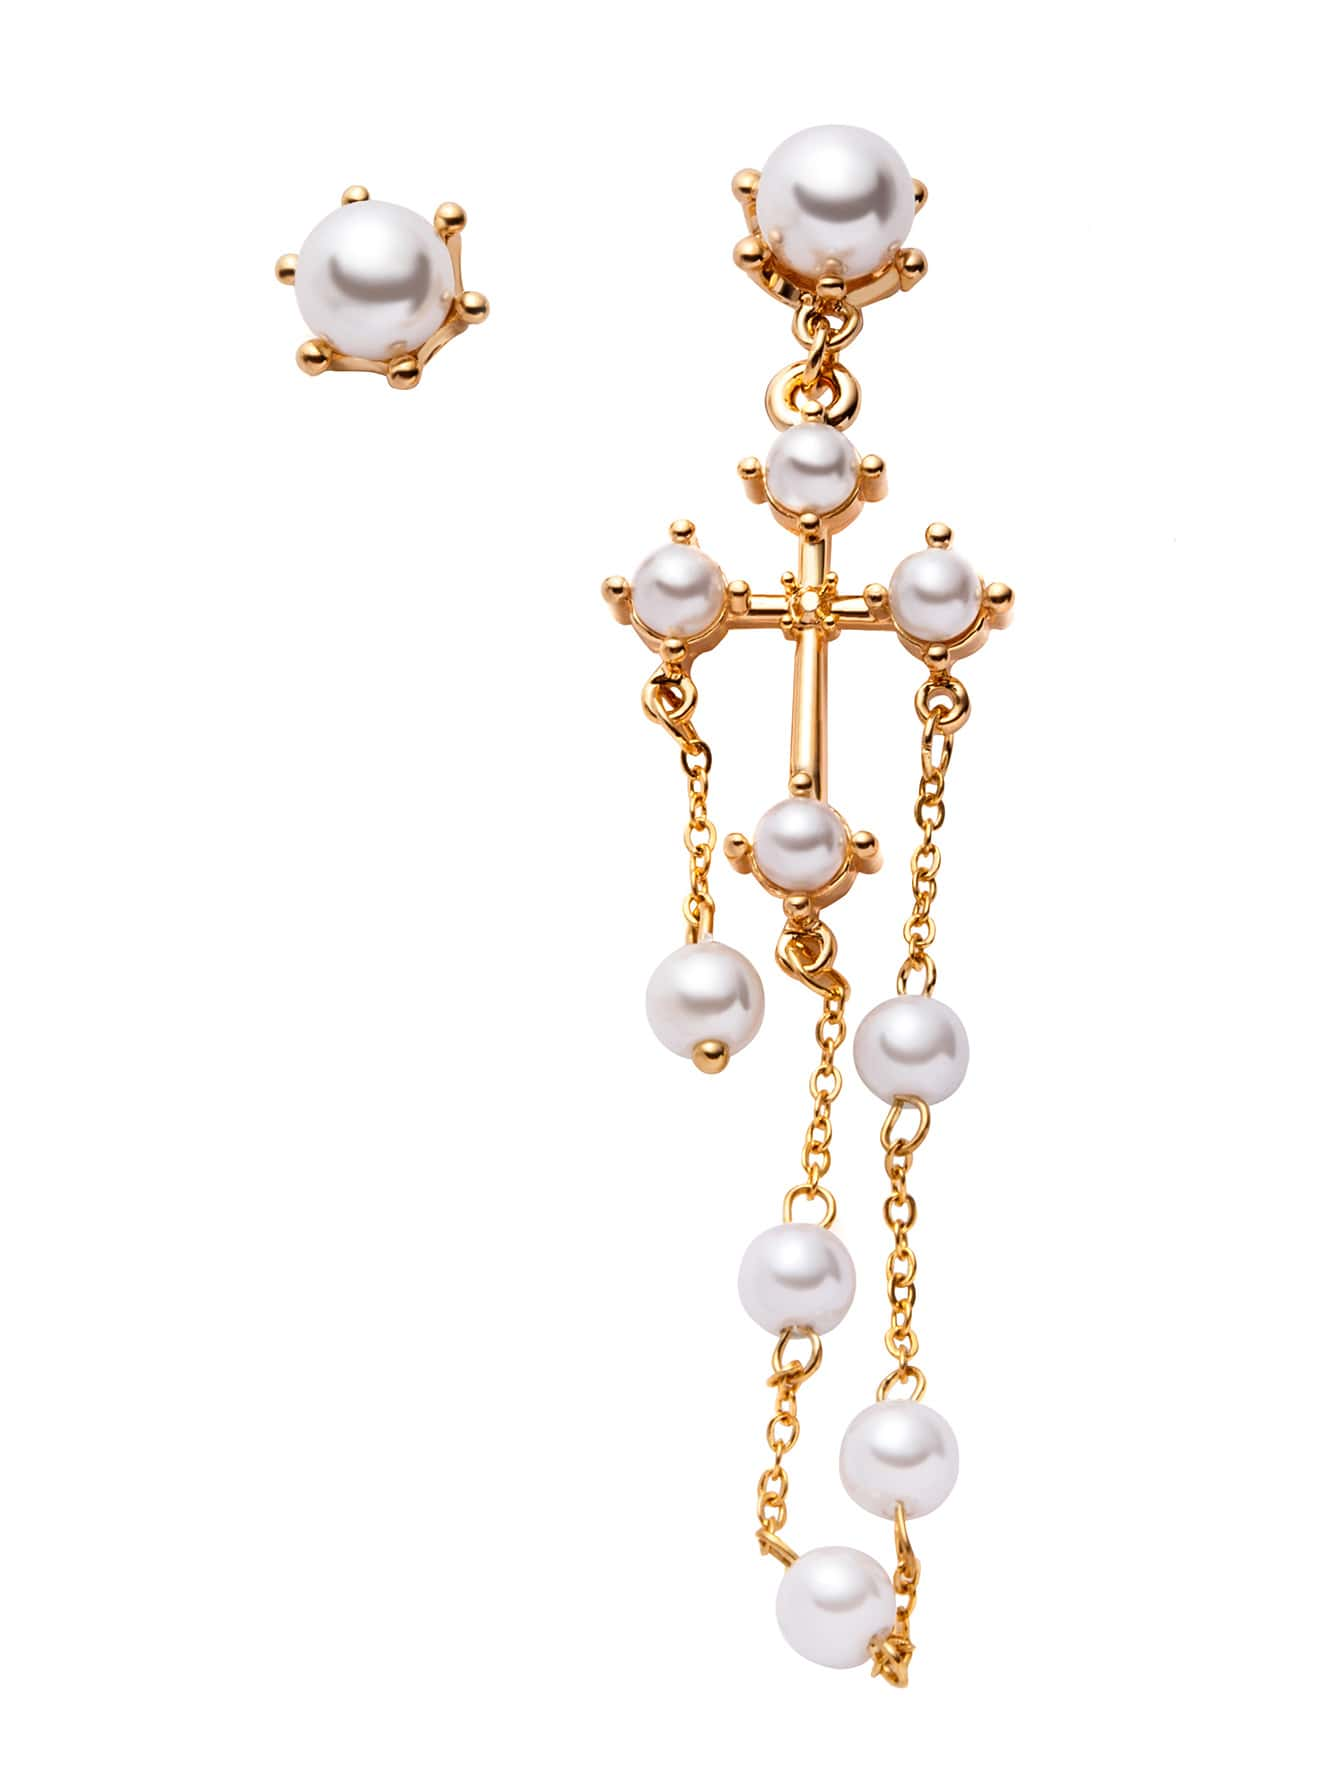 Gold Plated Faux Pearl Asymmetrical EarringsGold Plated Faux Pearl Asymmetrical Earrings<br><br>color: Gold<br>size: None